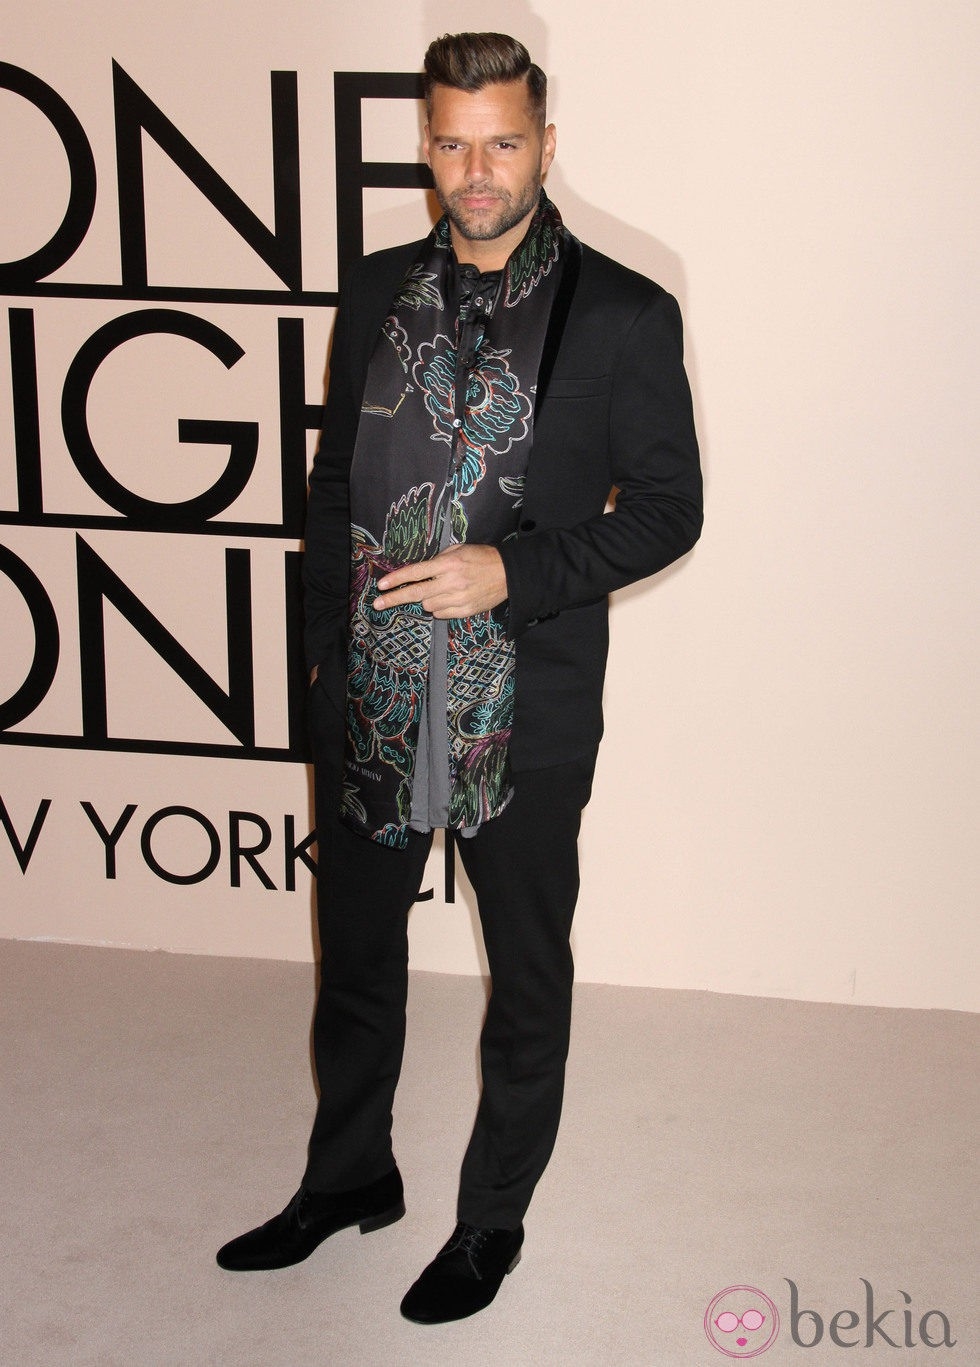 Ricky Martin en la fiesta de Giorgio Armani 'One Night Only' en Nueva York